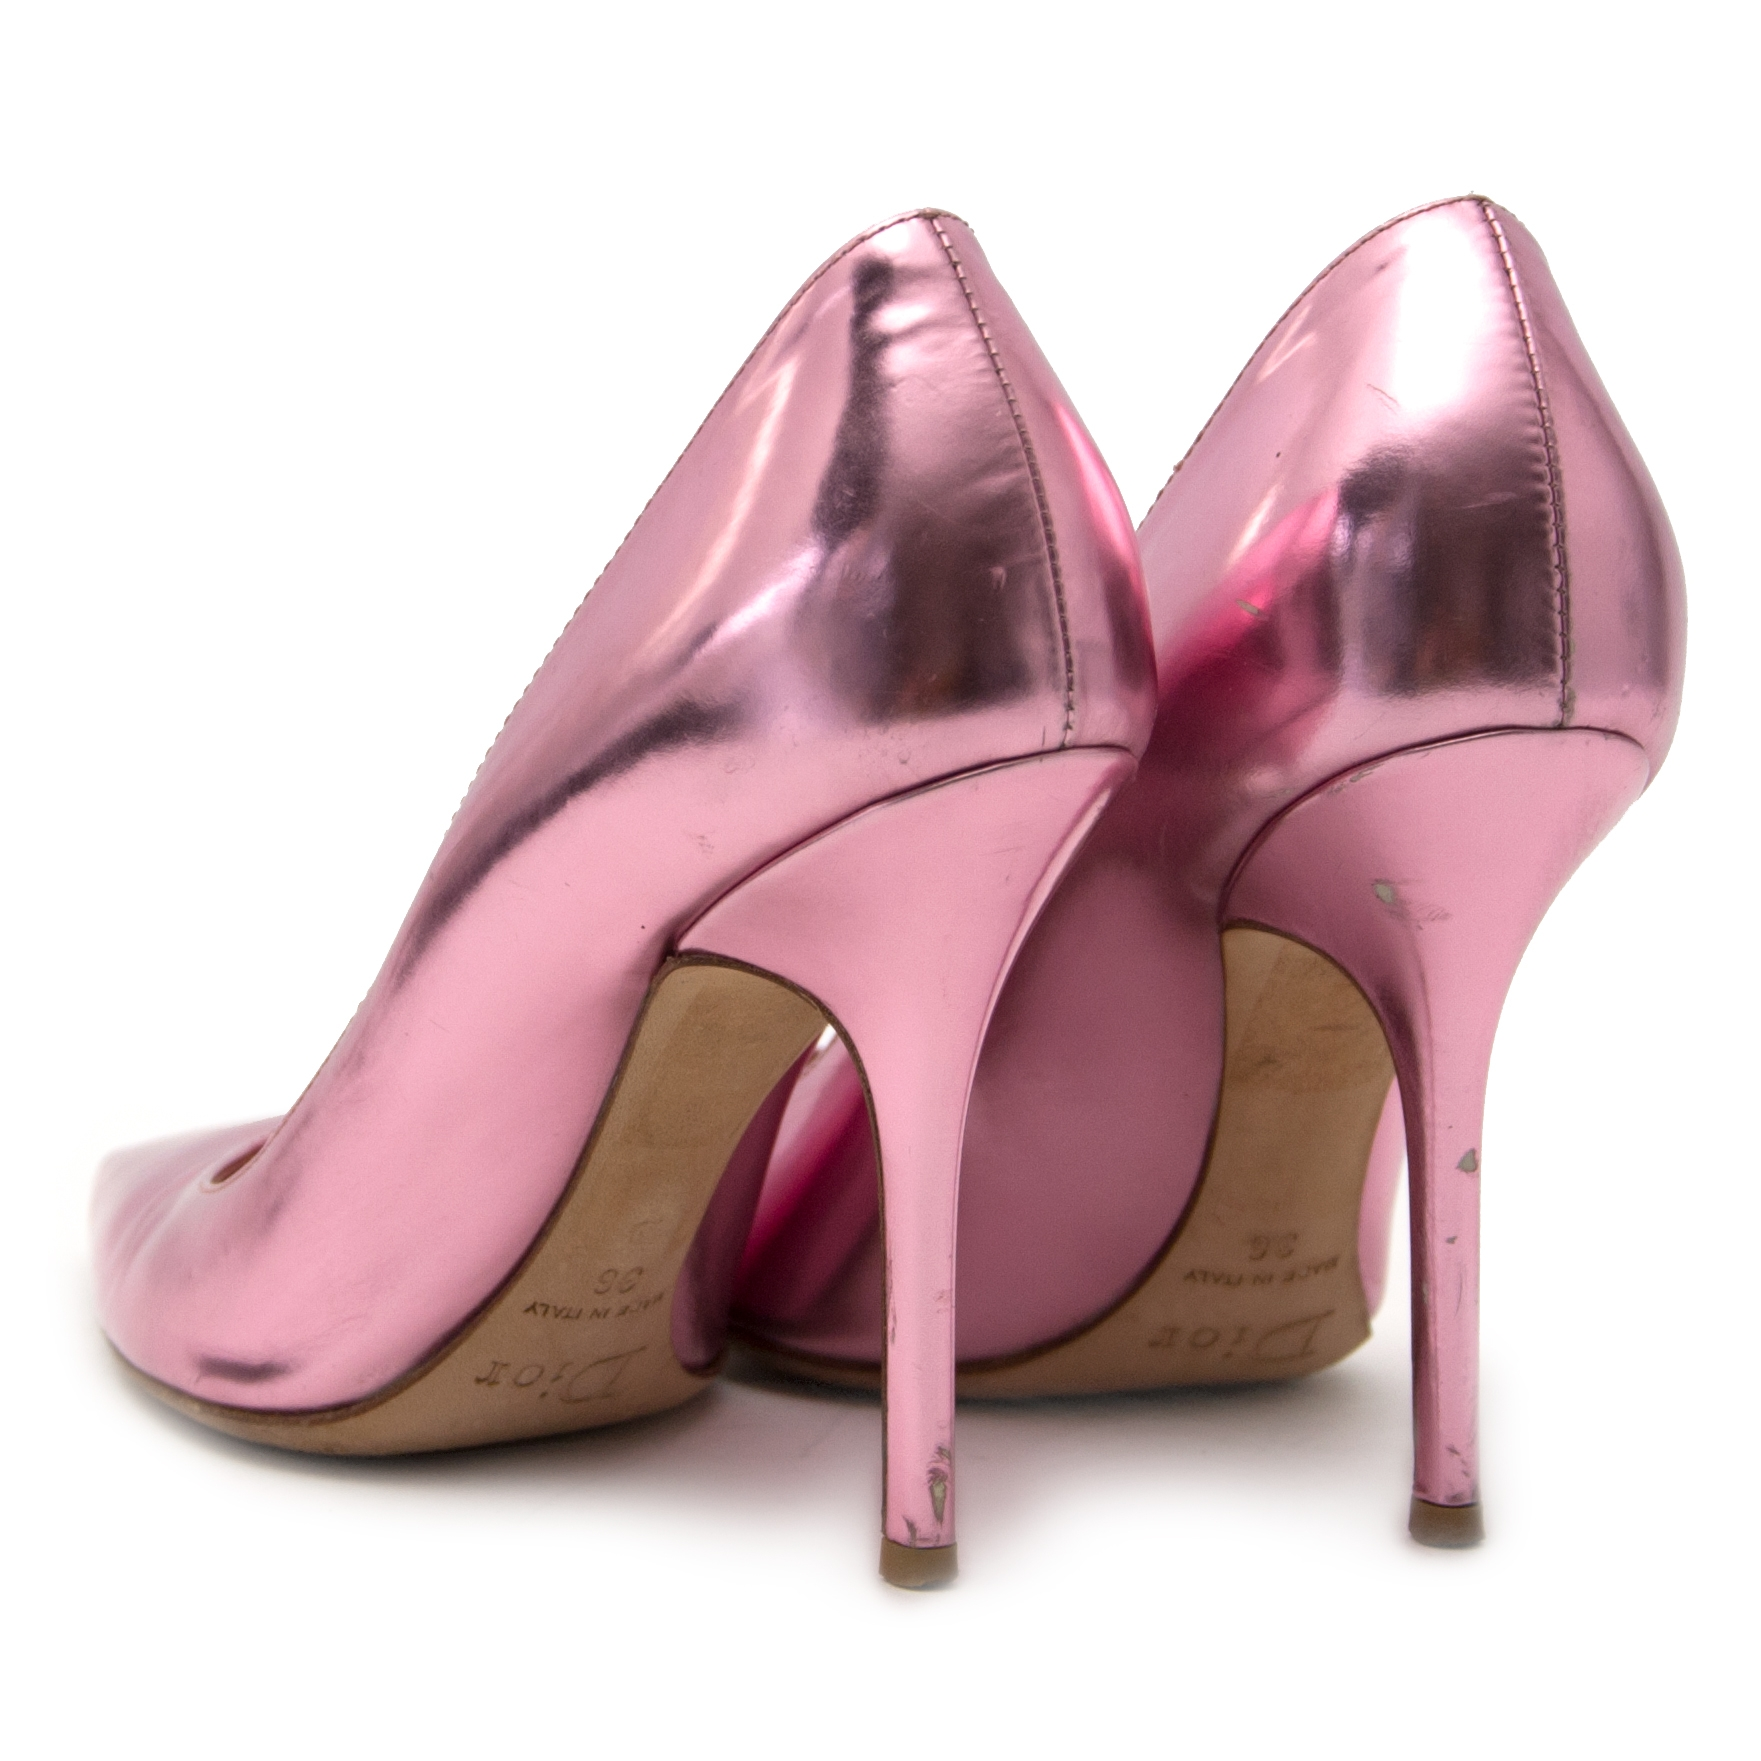 Dior Pink Metallic Pumps - Size 36 online at the best price